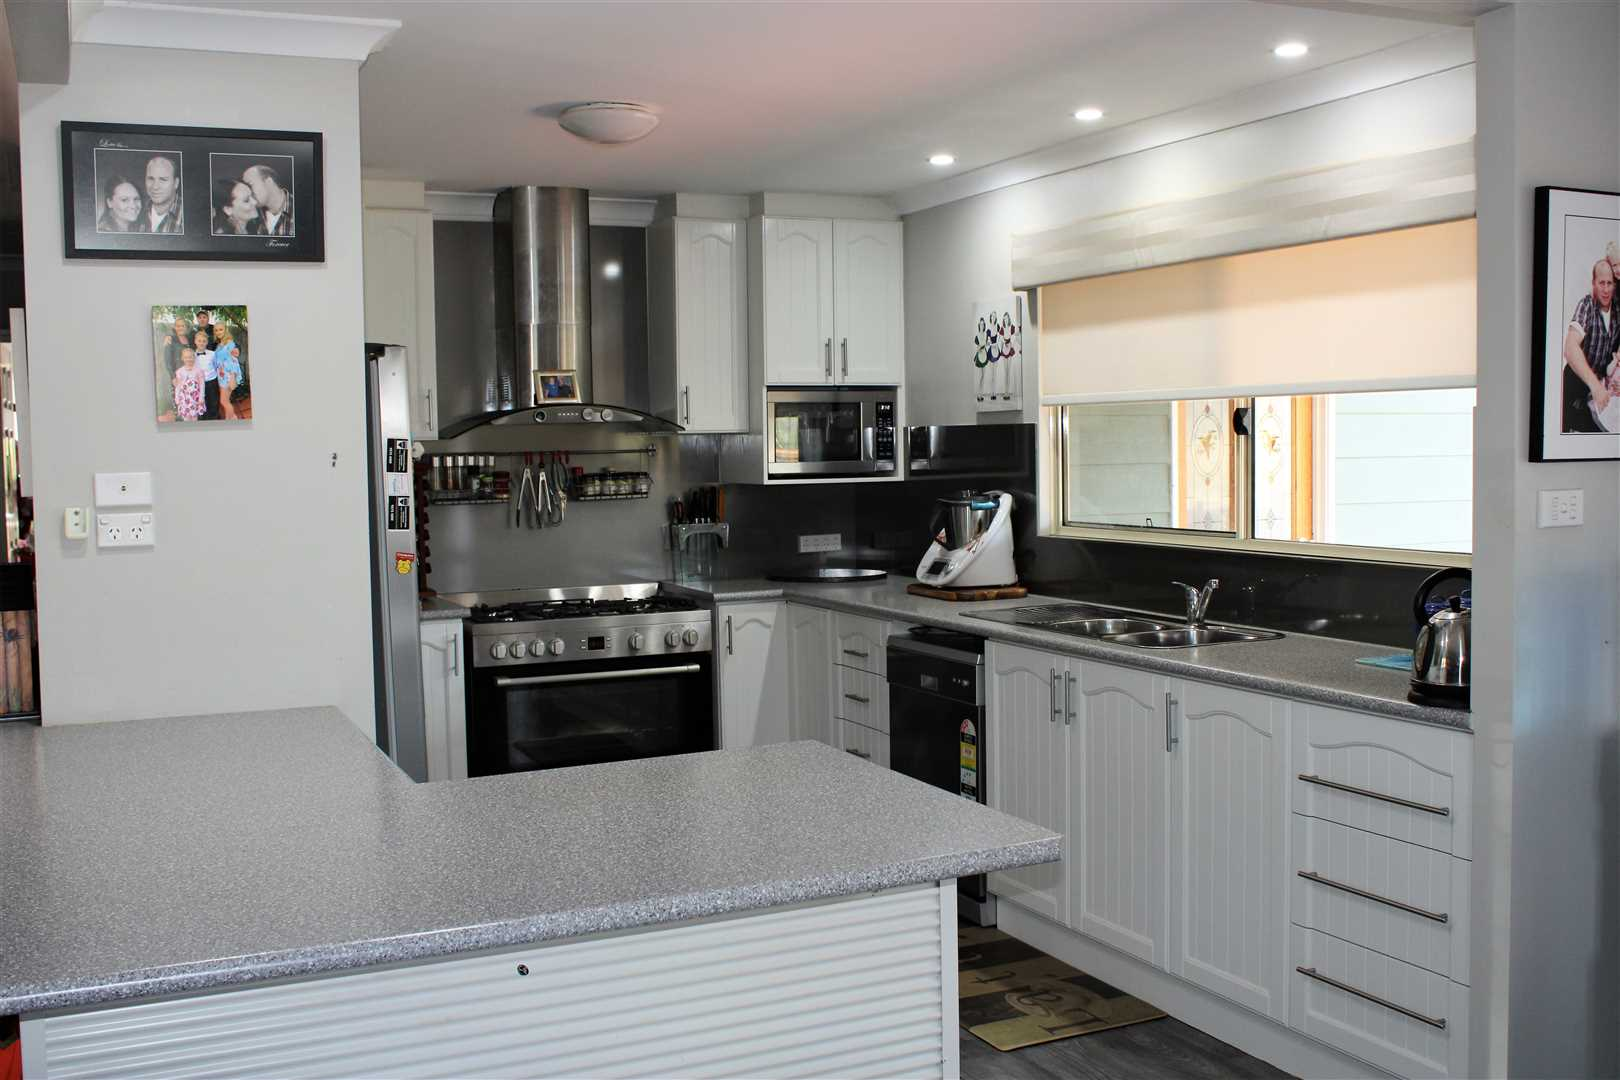 Kitchen in main residence